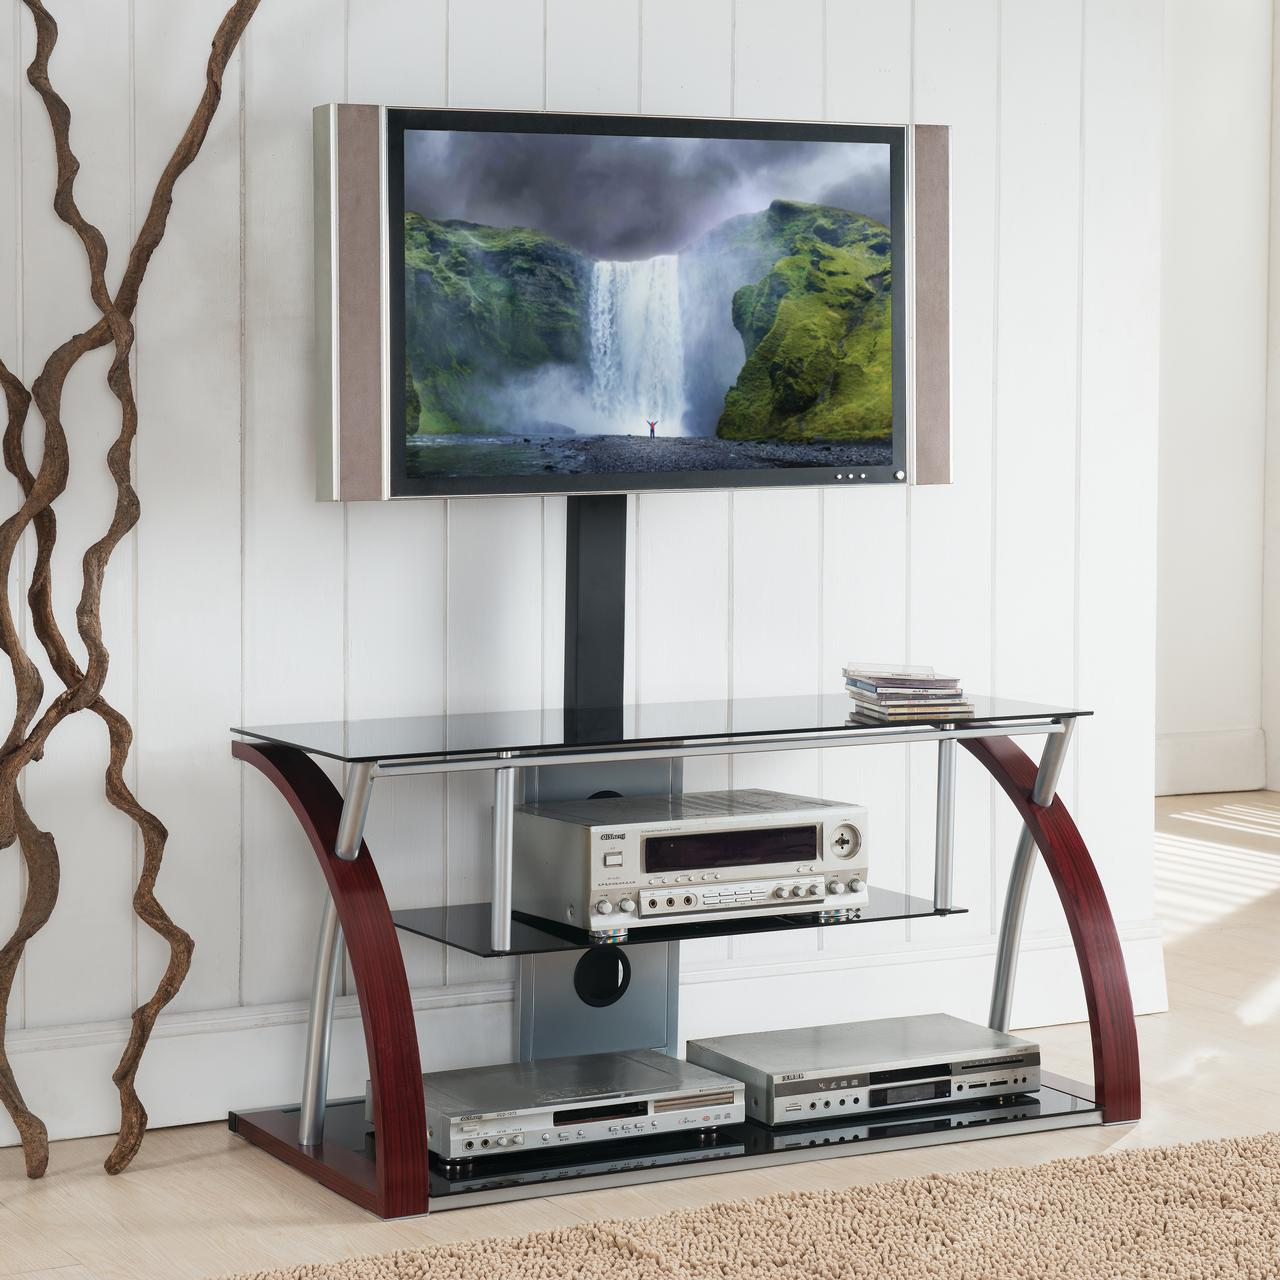 Home Source Logan Plasma TV Stand with Mount and 3 Black Glass Shelves, Cherry Wood Grain and Chrome Frame